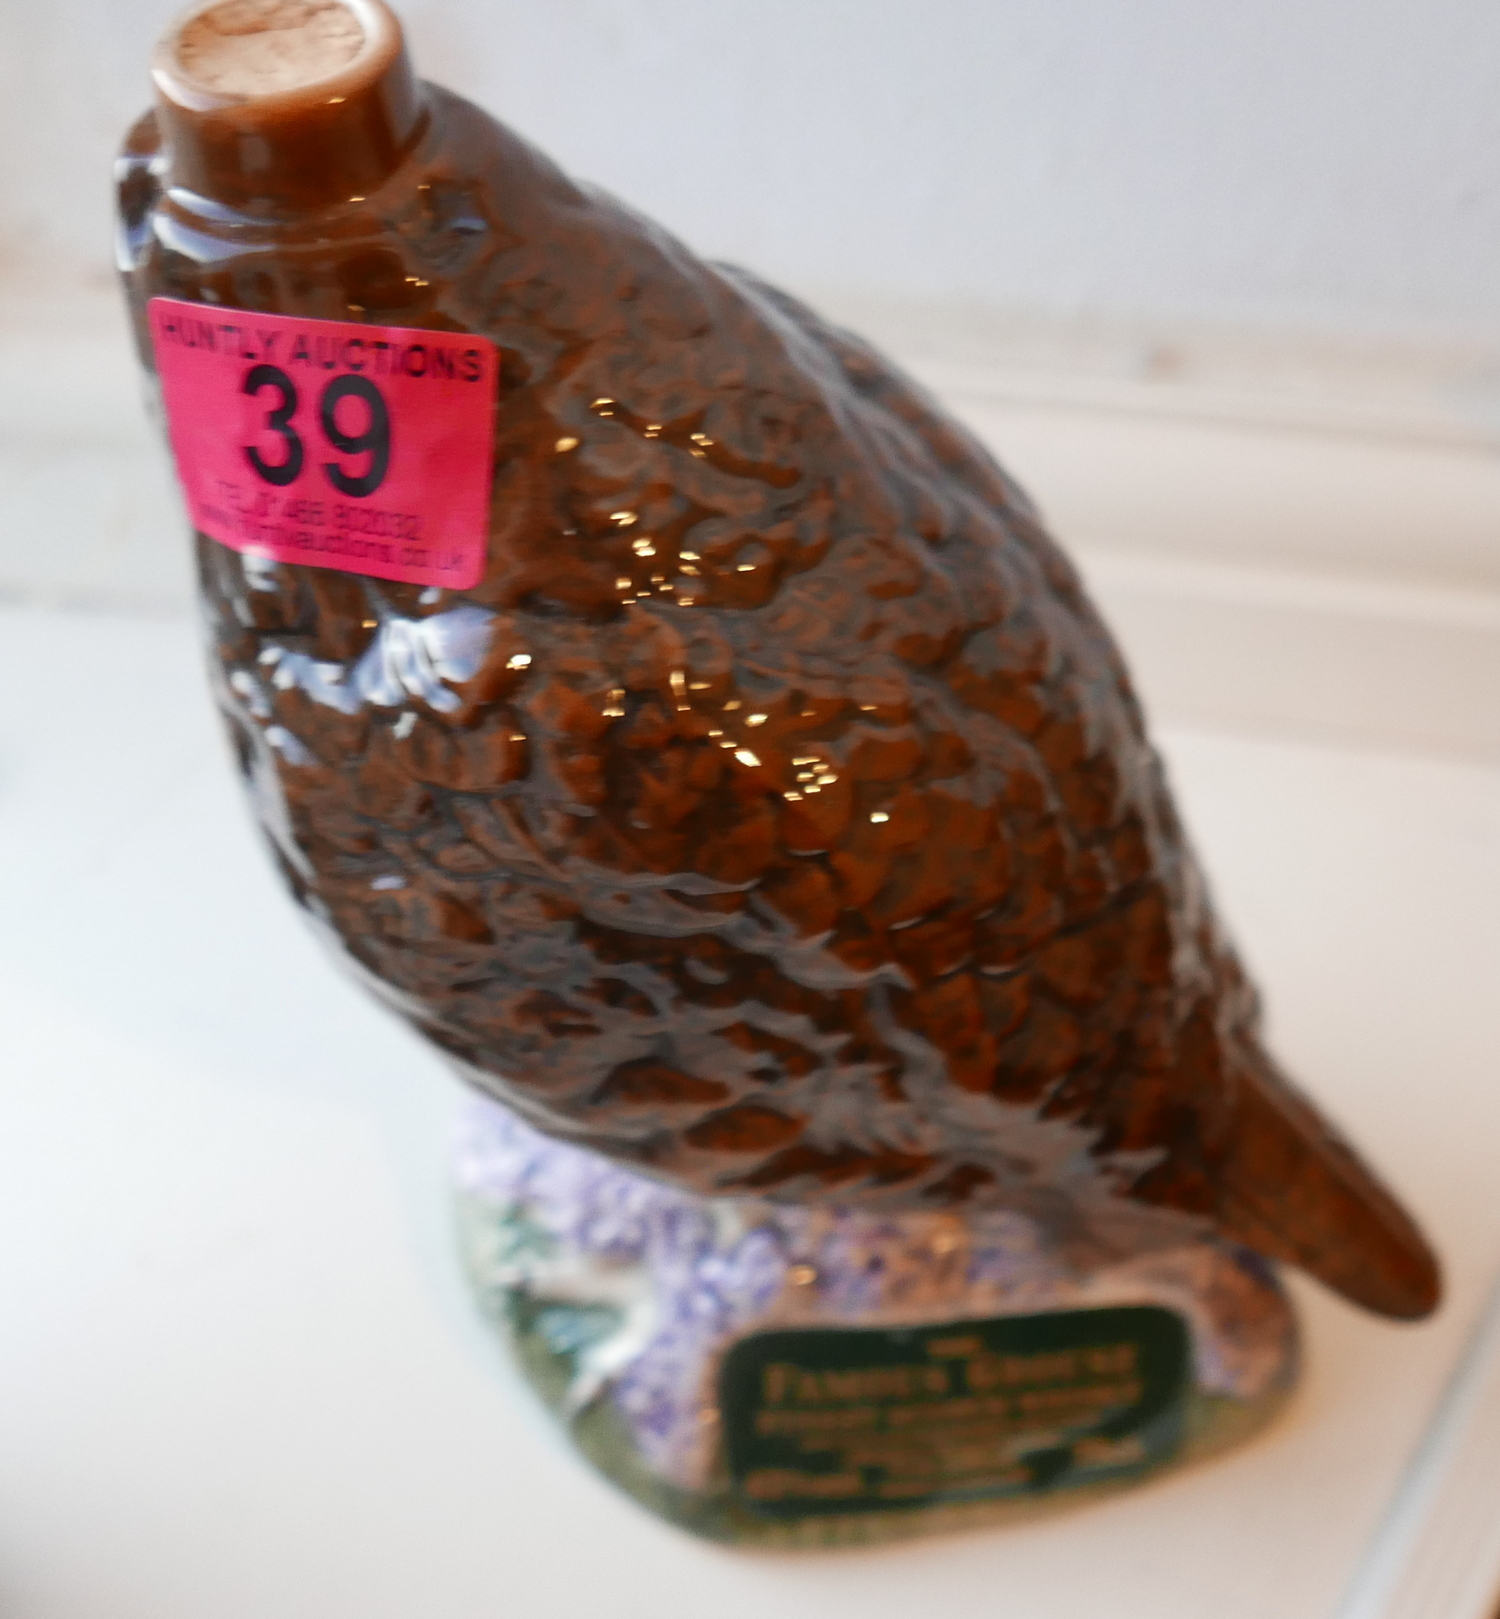 Lot 39 - Royal Doulton Golden Eagle and Beswick Grouse Decanters Full of Whisky.